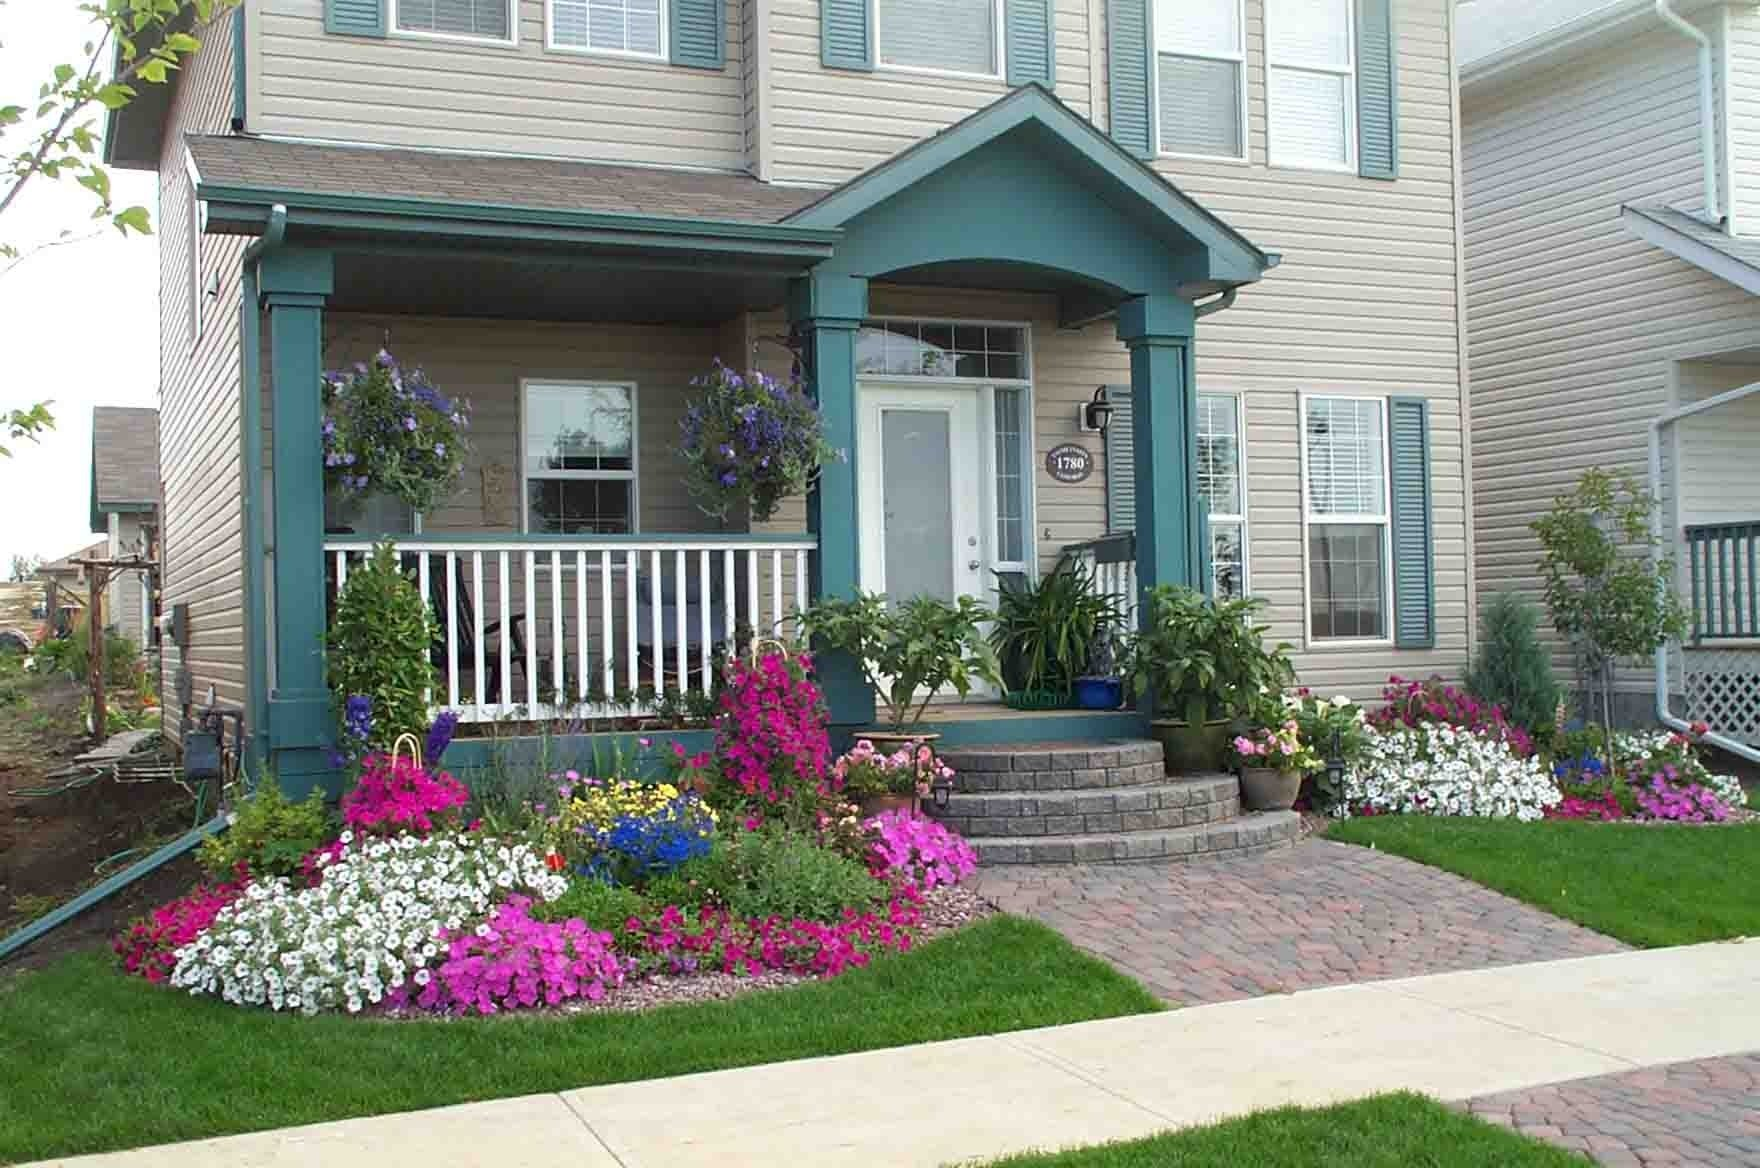 10 Wonderful Landscape Ideas For Small Front Yards images about landscape ideas on pinterest blue spruce small front 2020